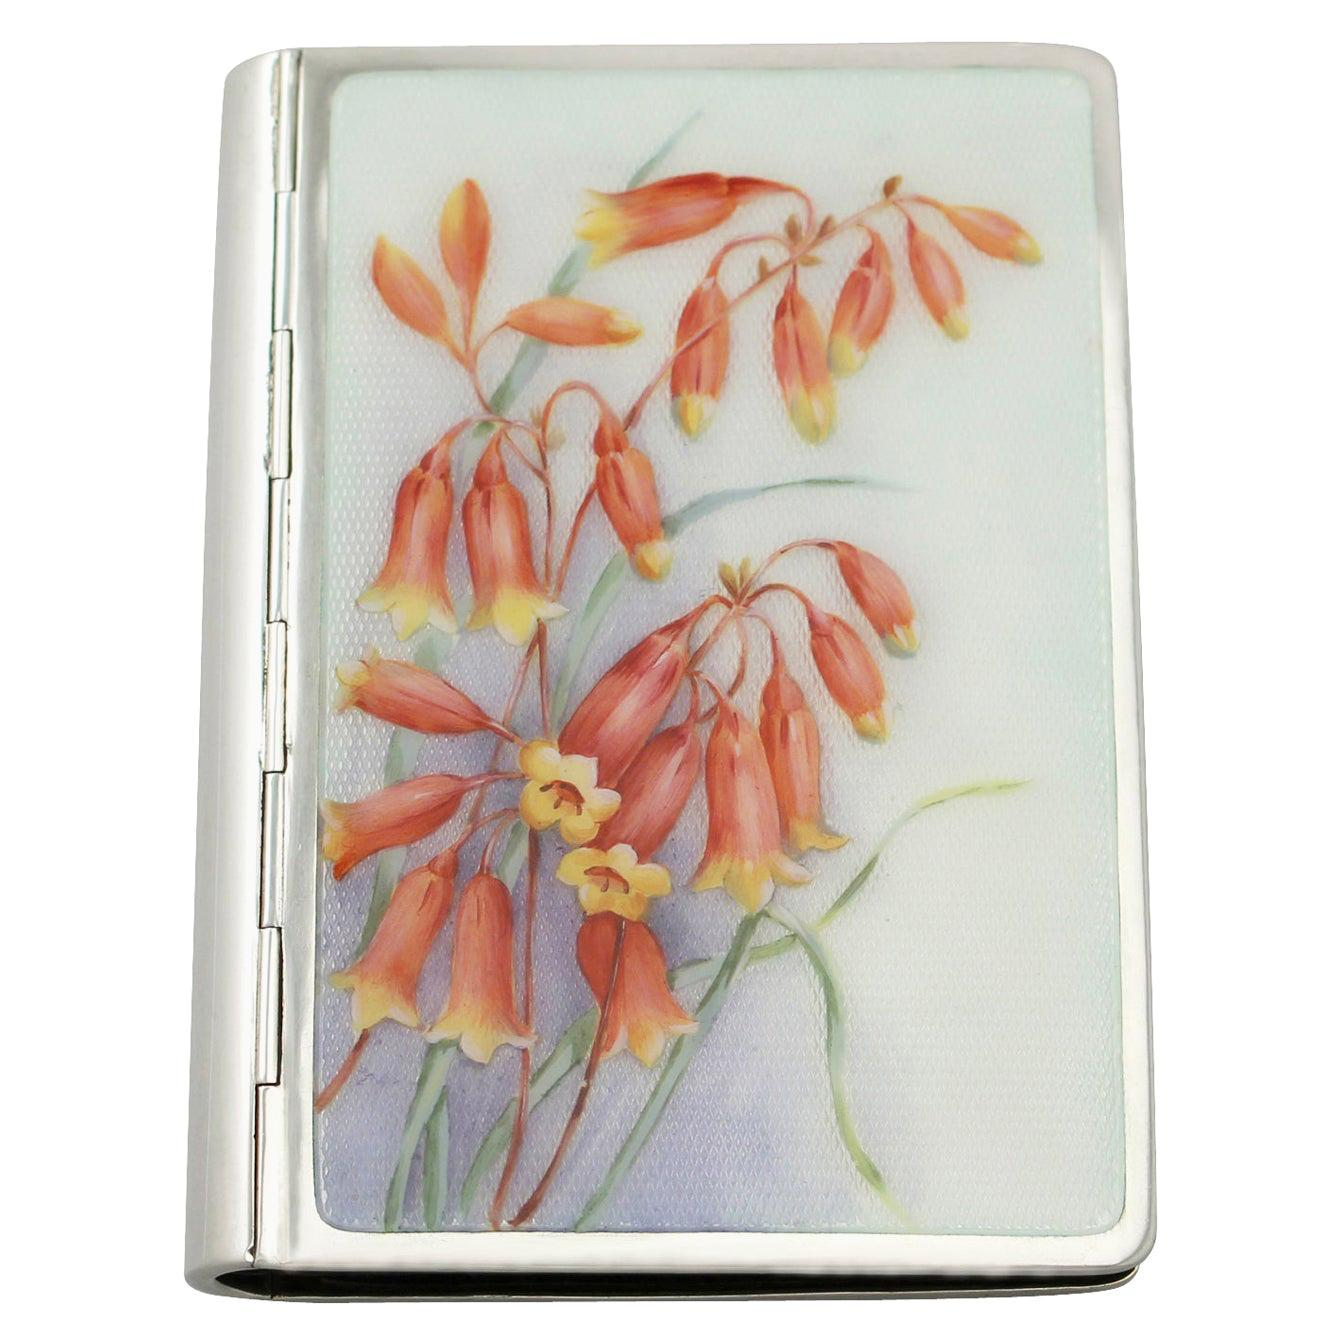 1940s German Silver and Enamel Card Case